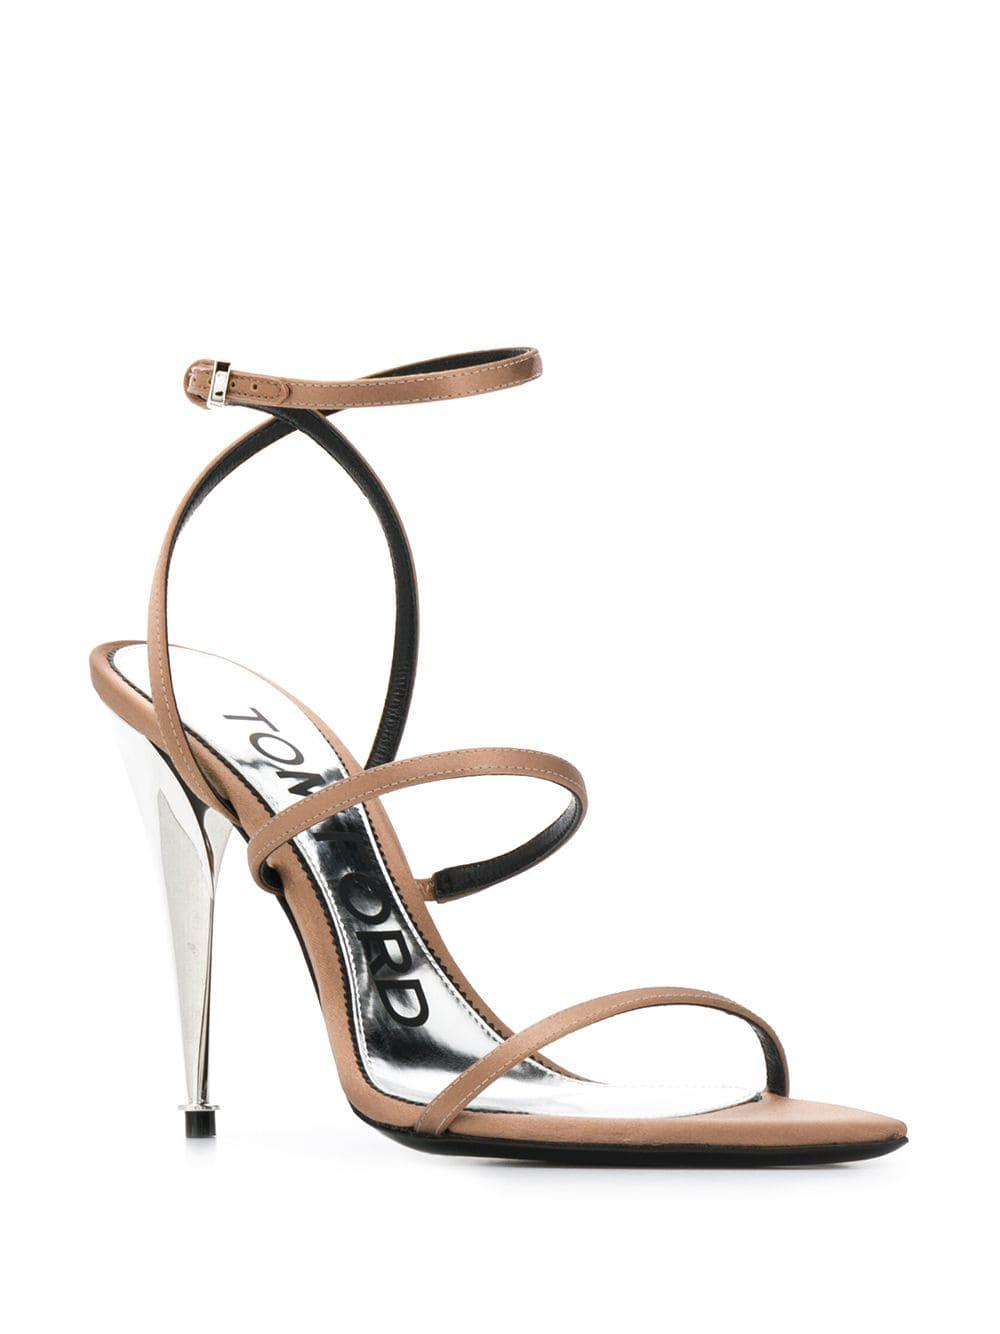 de89de4f53 Tom Ford Strappy Design Sandals - Lyst